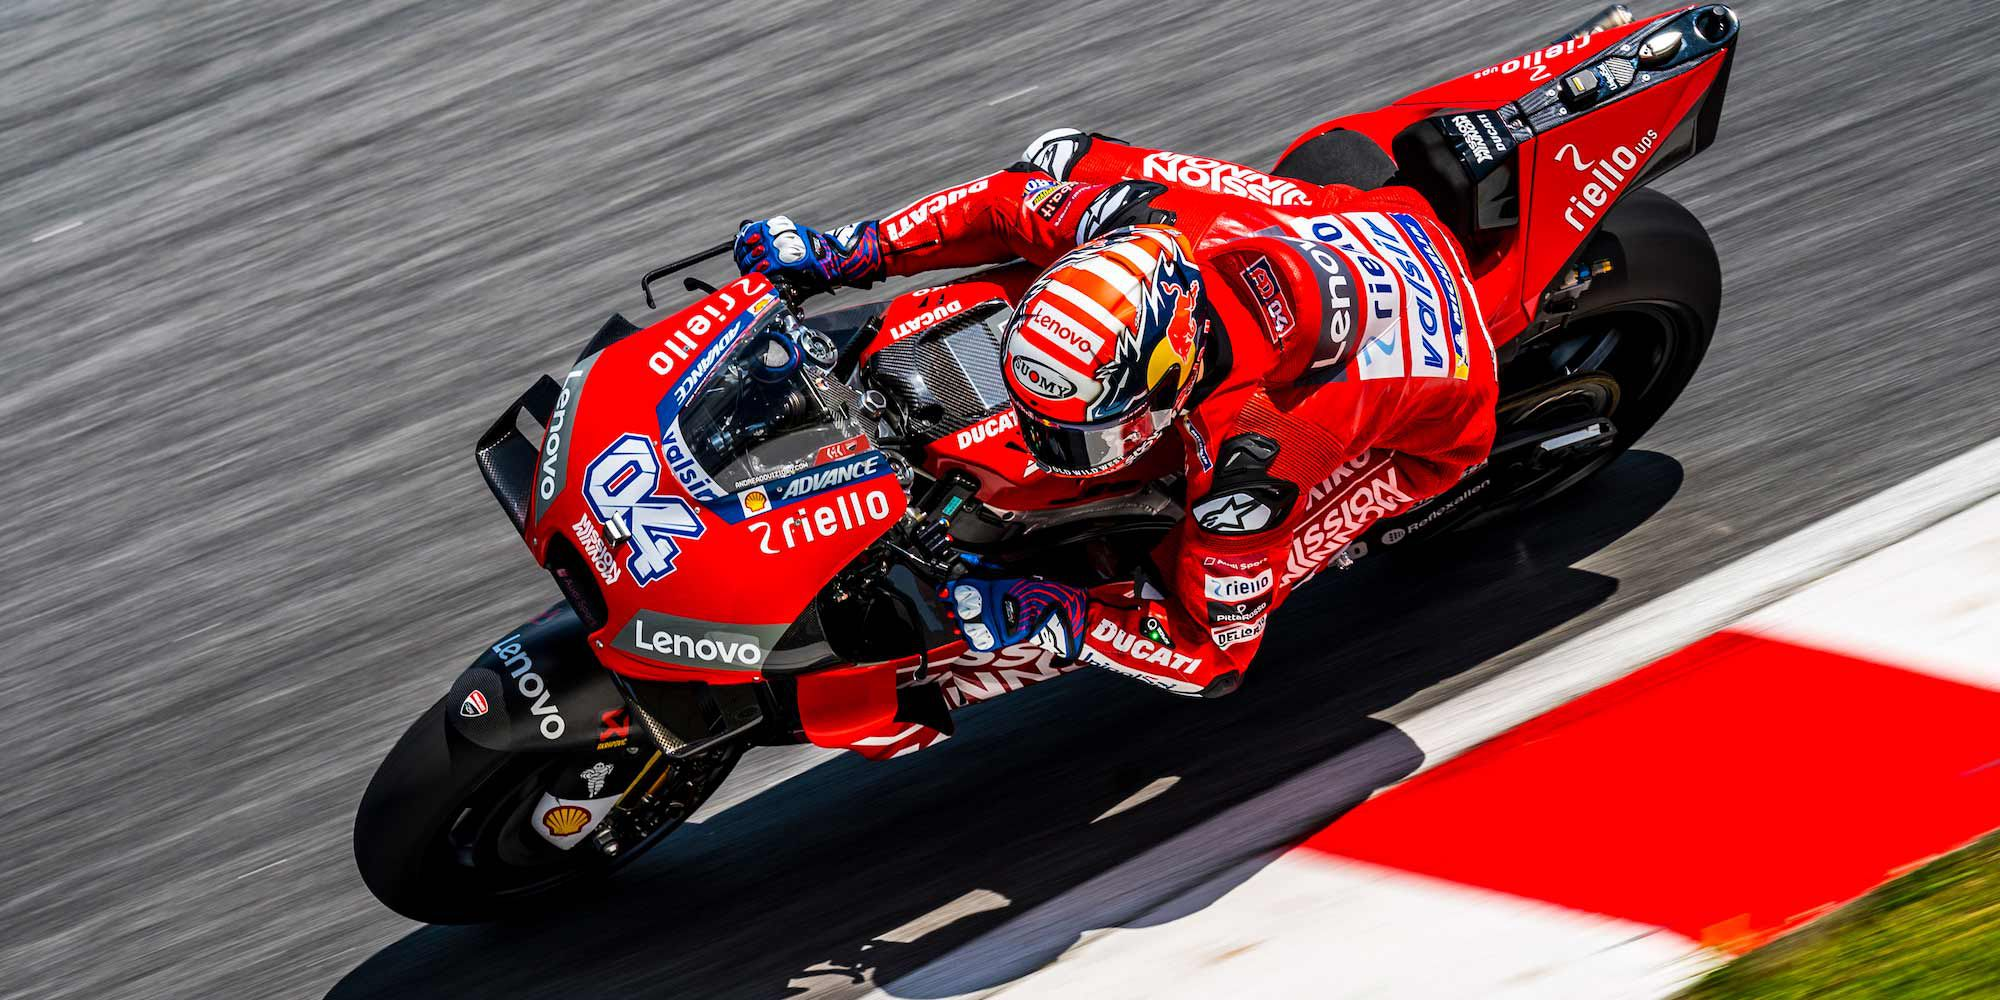 What Is The Big Wing Nut On Ducati's MotoGP Bike? | Cycle World